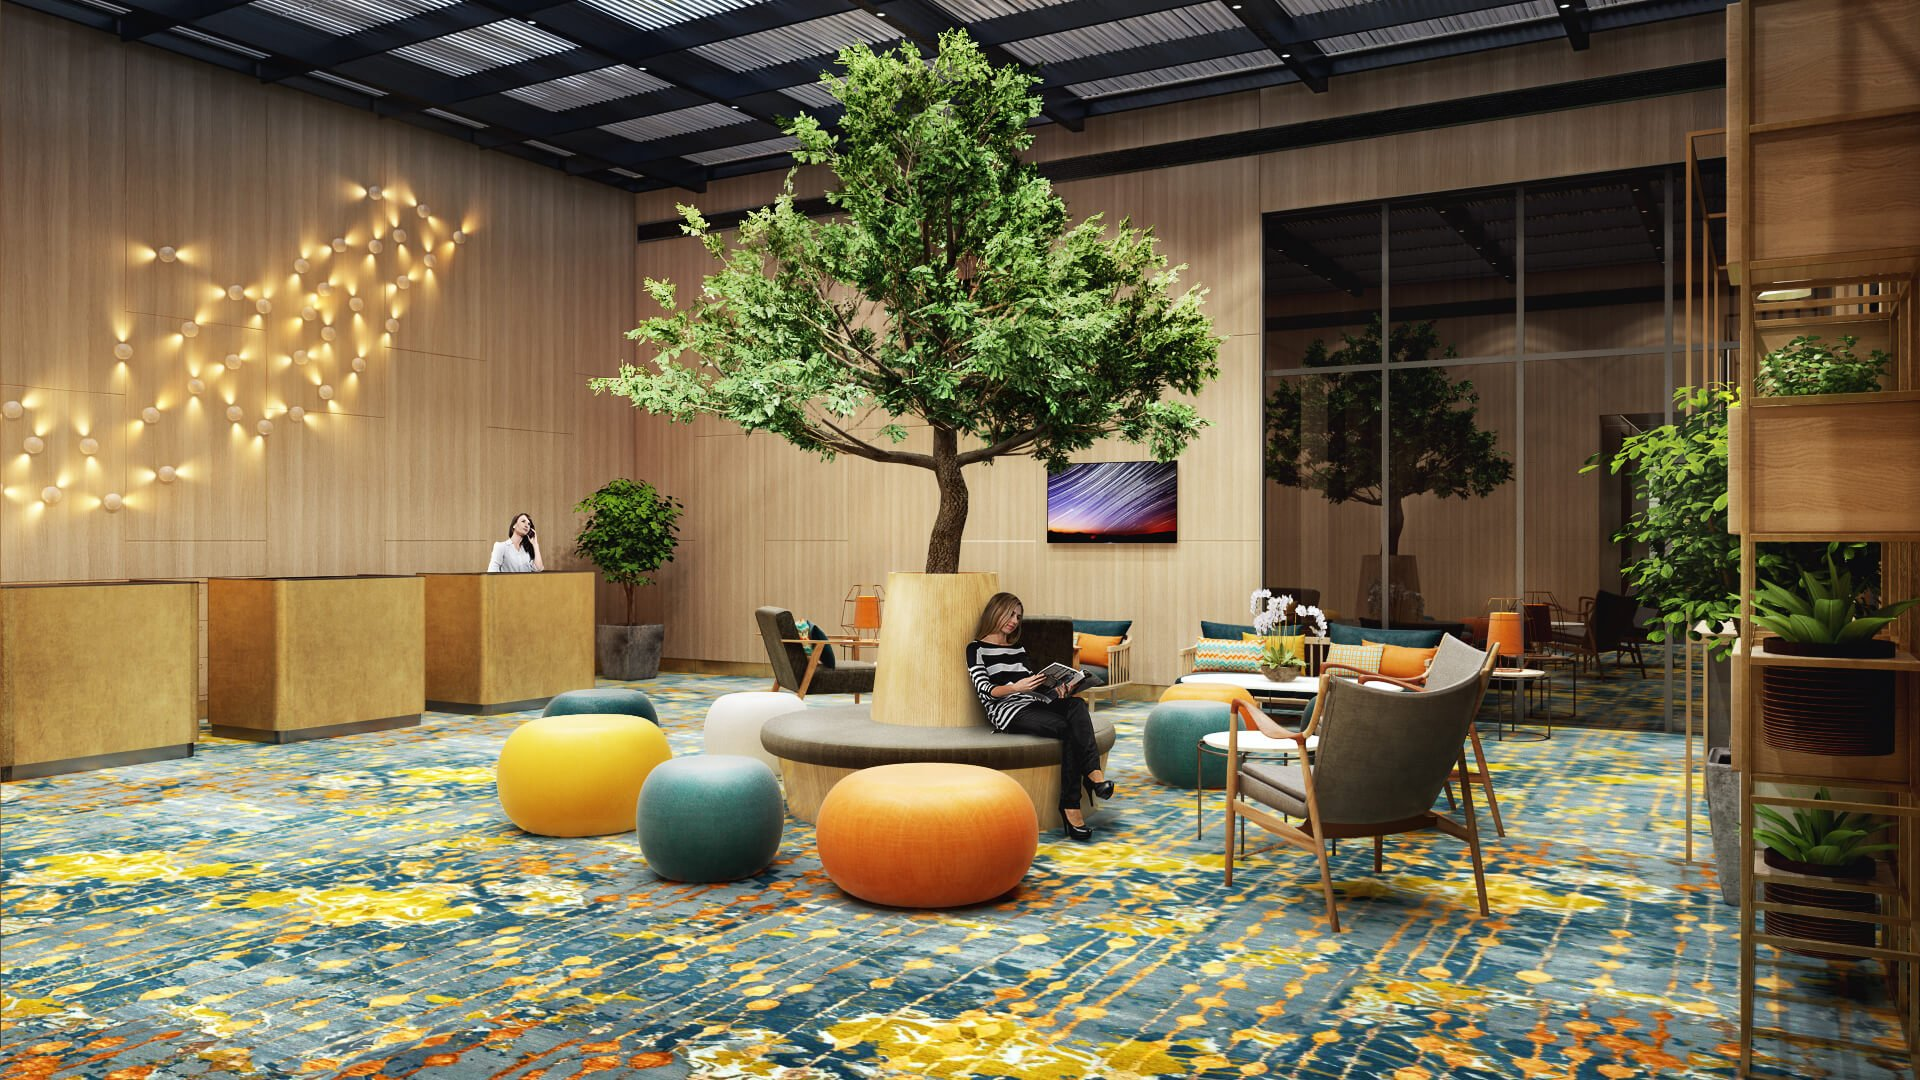 3D Lobby Interior Rendering for Email Marketing